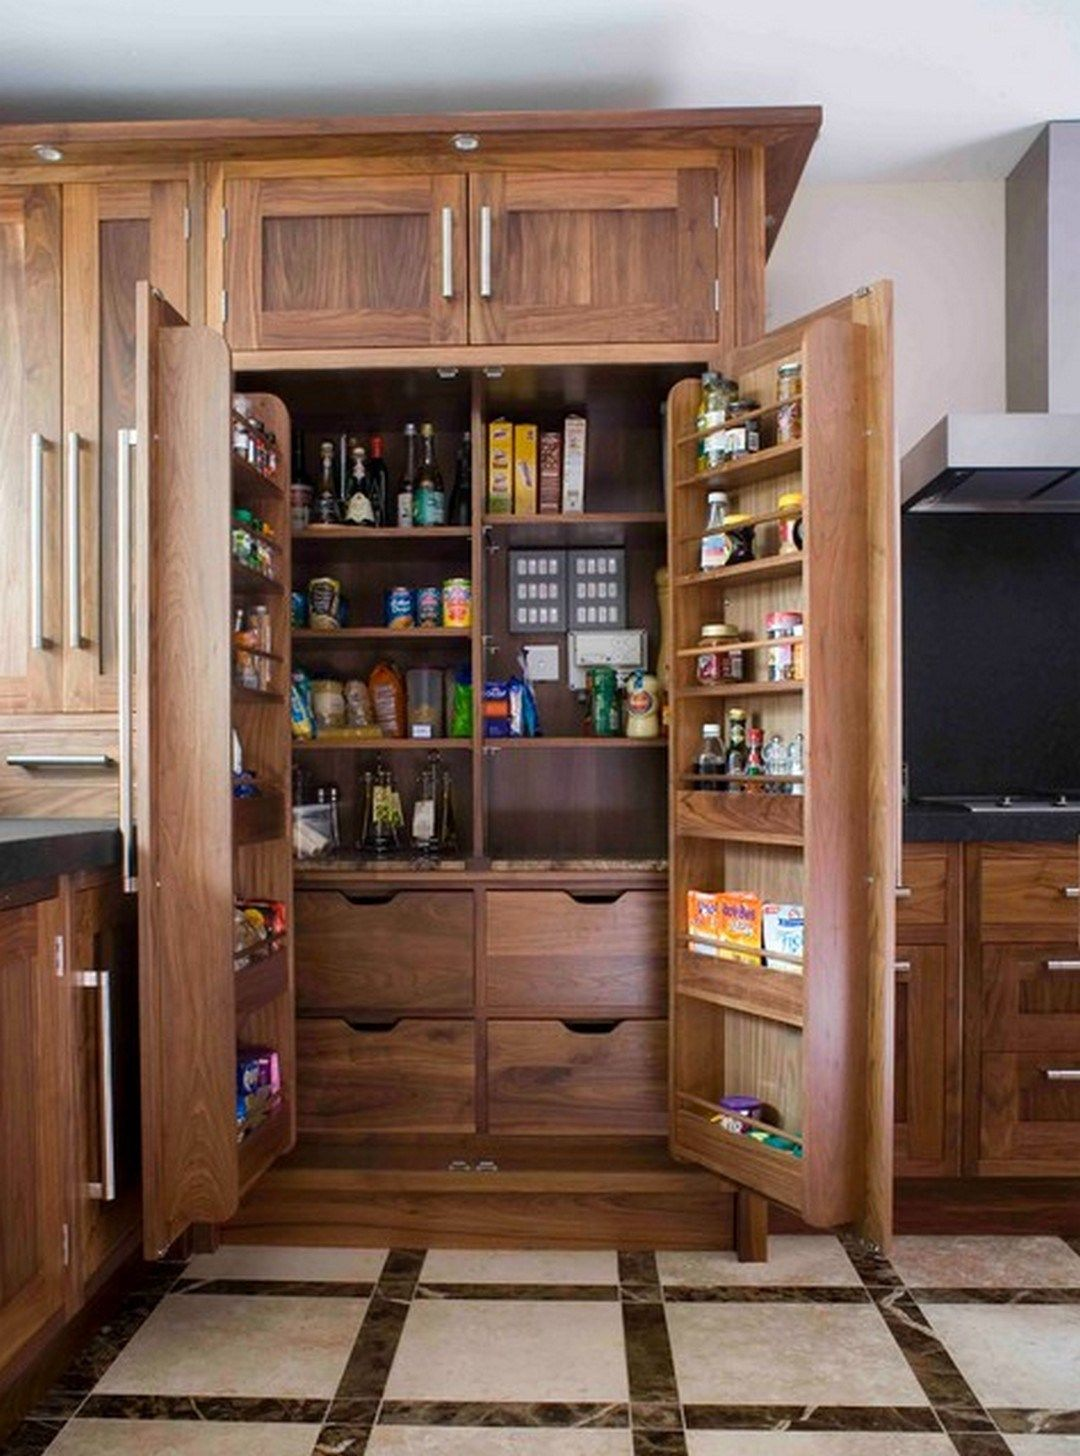 37 pantry cabinet ideas that solve kitchen storage problems 19 pantry design kitchen pantry on kitchen organization cabinet id=93978